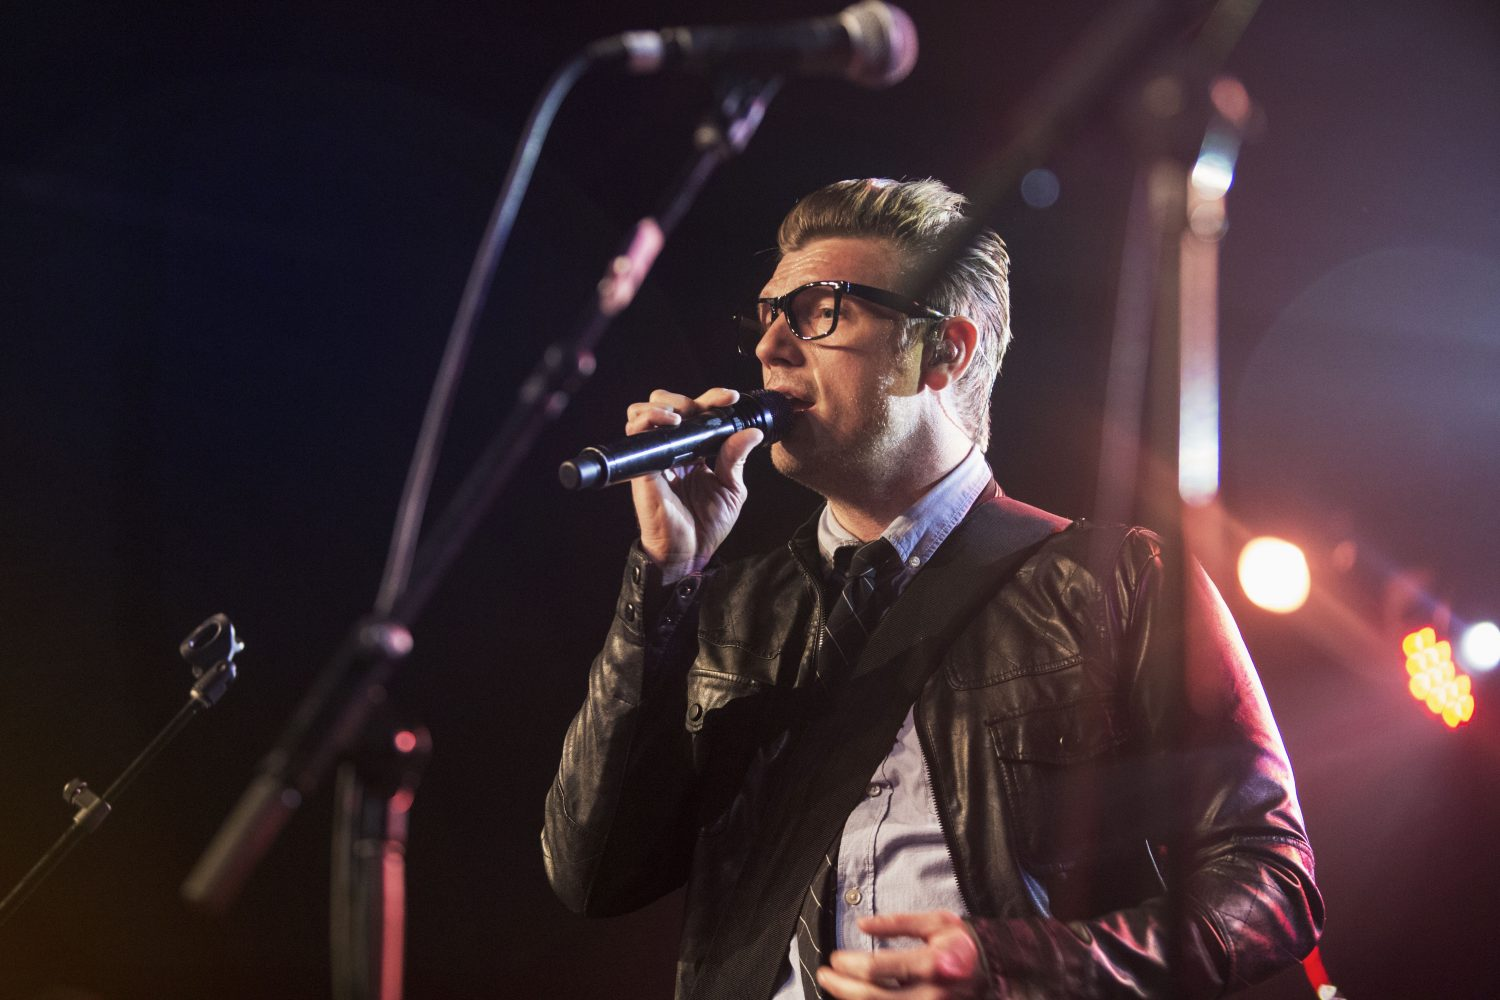 Nick Carter performs at Maxwell's